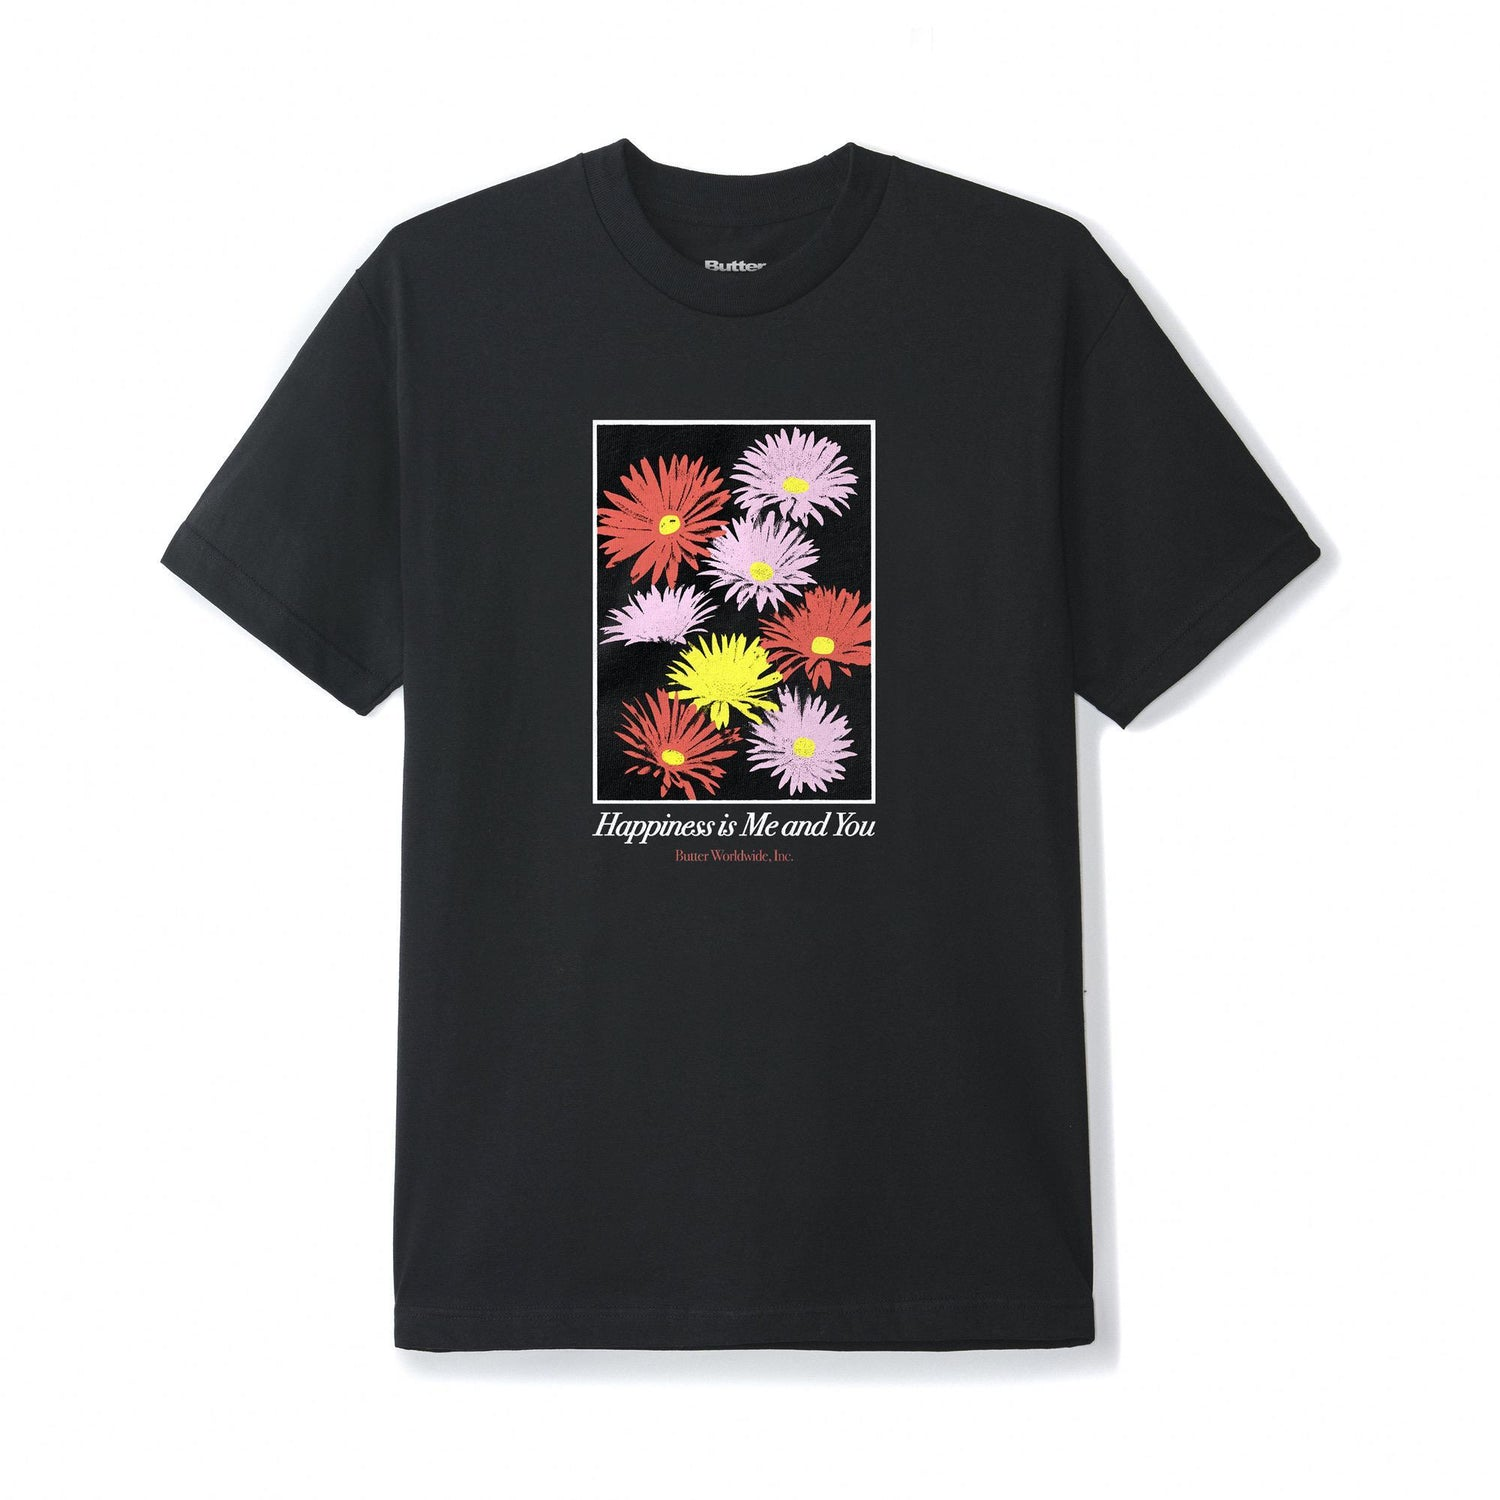 Happiness Tee, Black